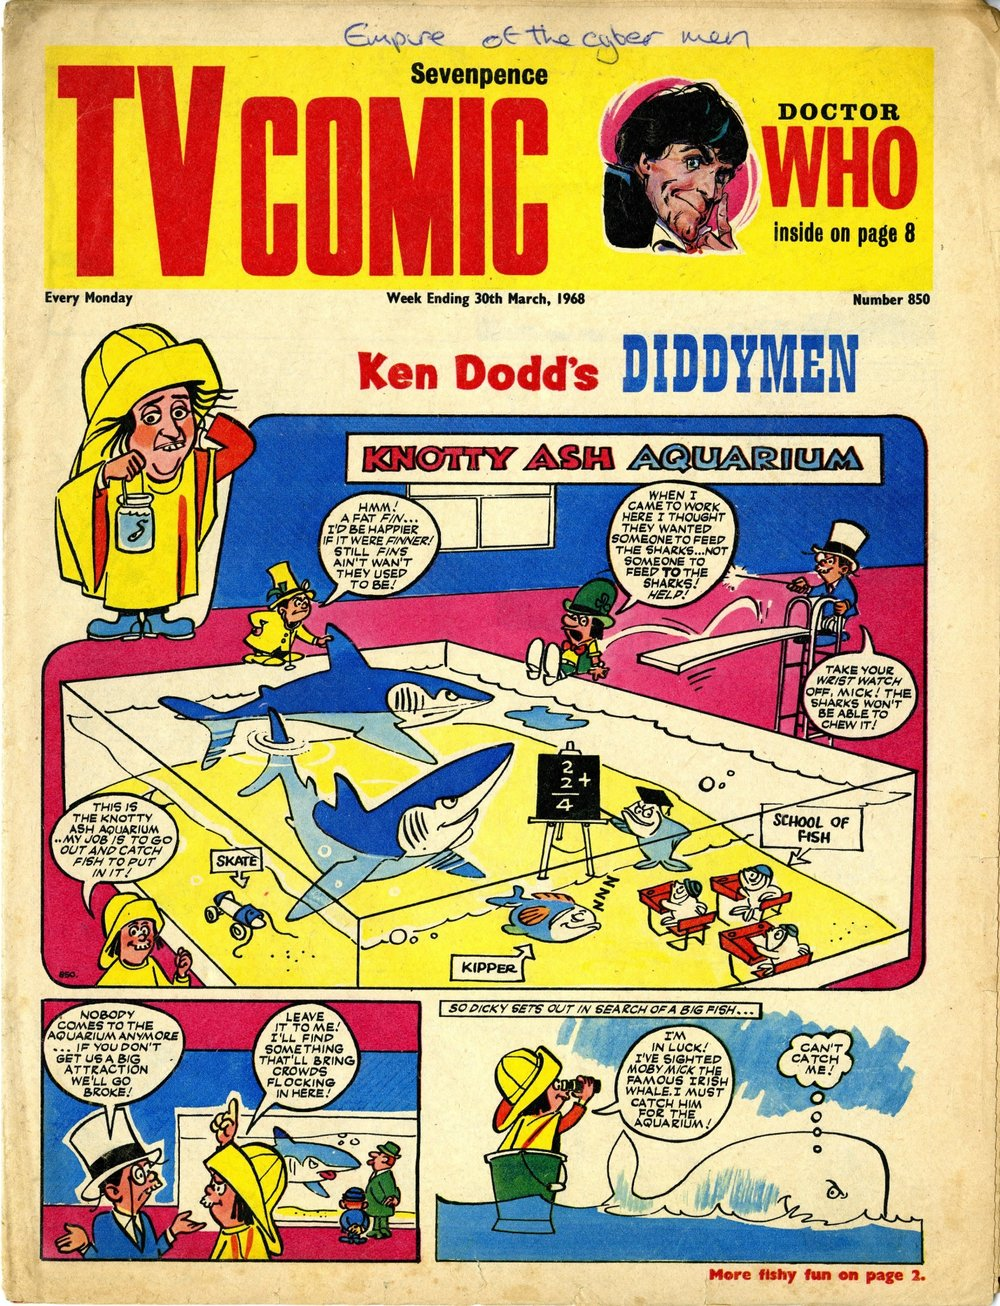 TV Comic, number 850, 30 March 1968